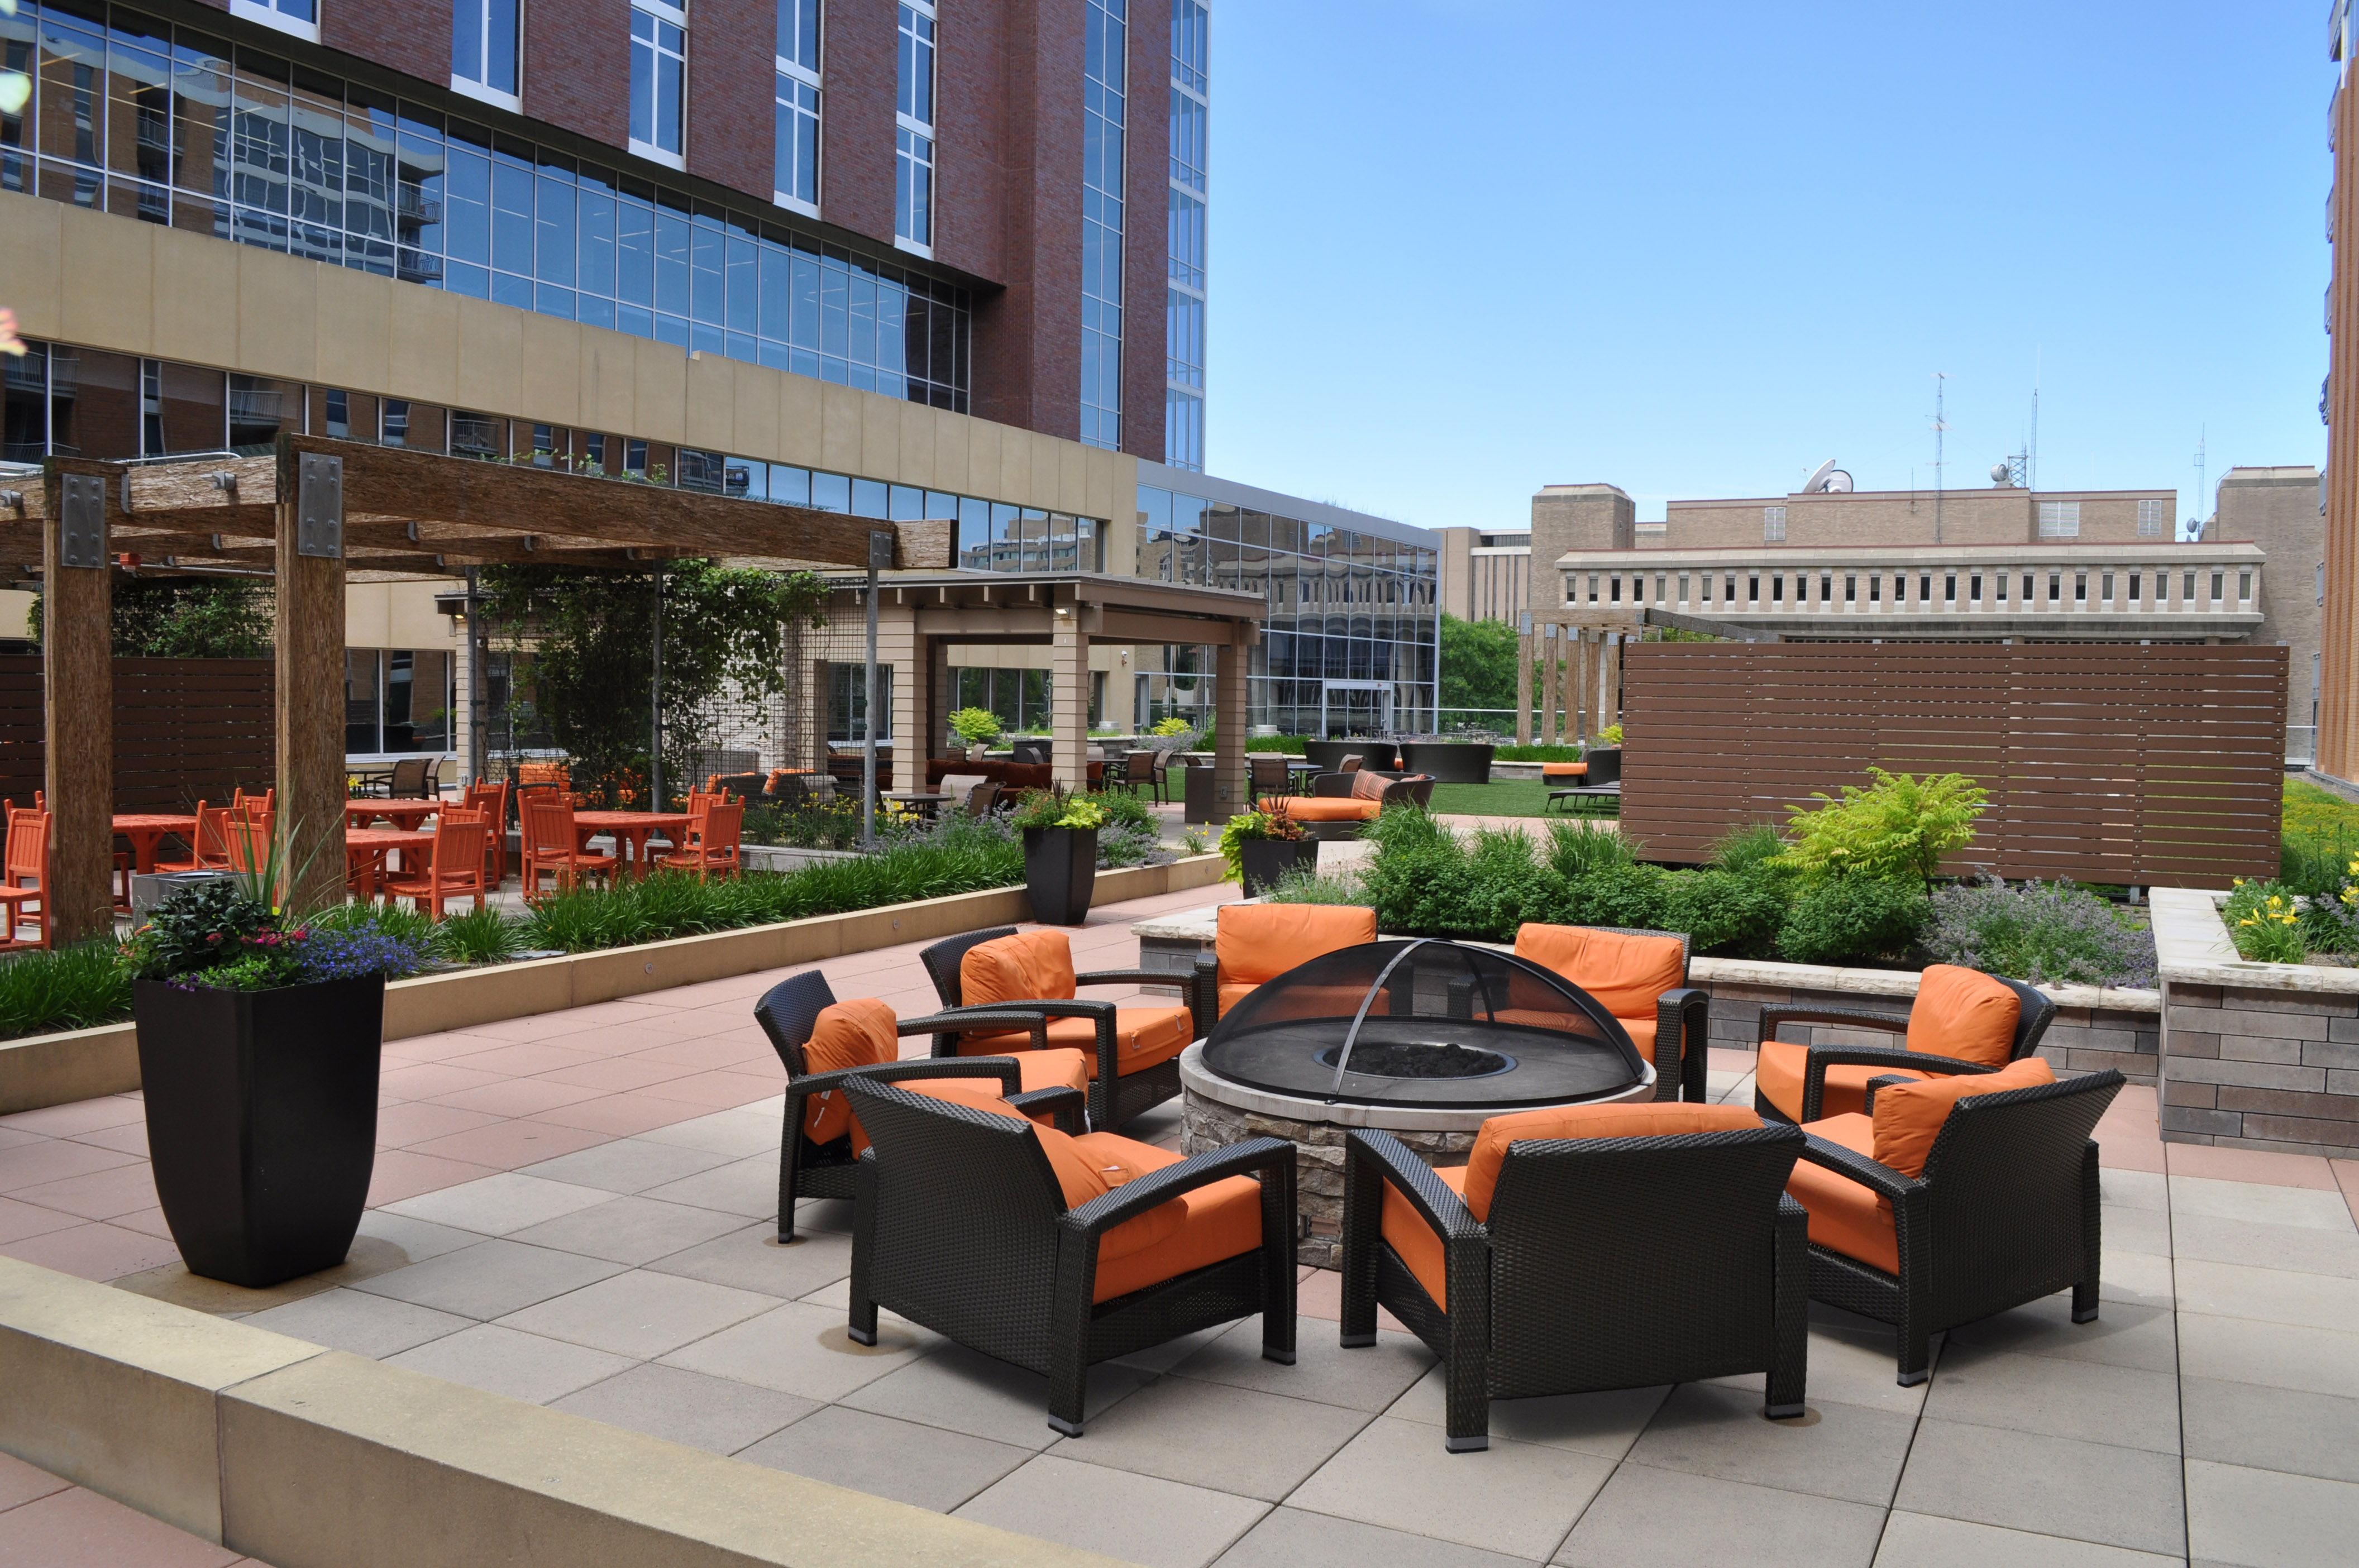 The rooftop terrace retrofit provided a larger, more diverse and more interactive space in which new amenities were seamlessly integrated with existing, resulting in a completely reimagined rooftop terrace and lifestyle experience.